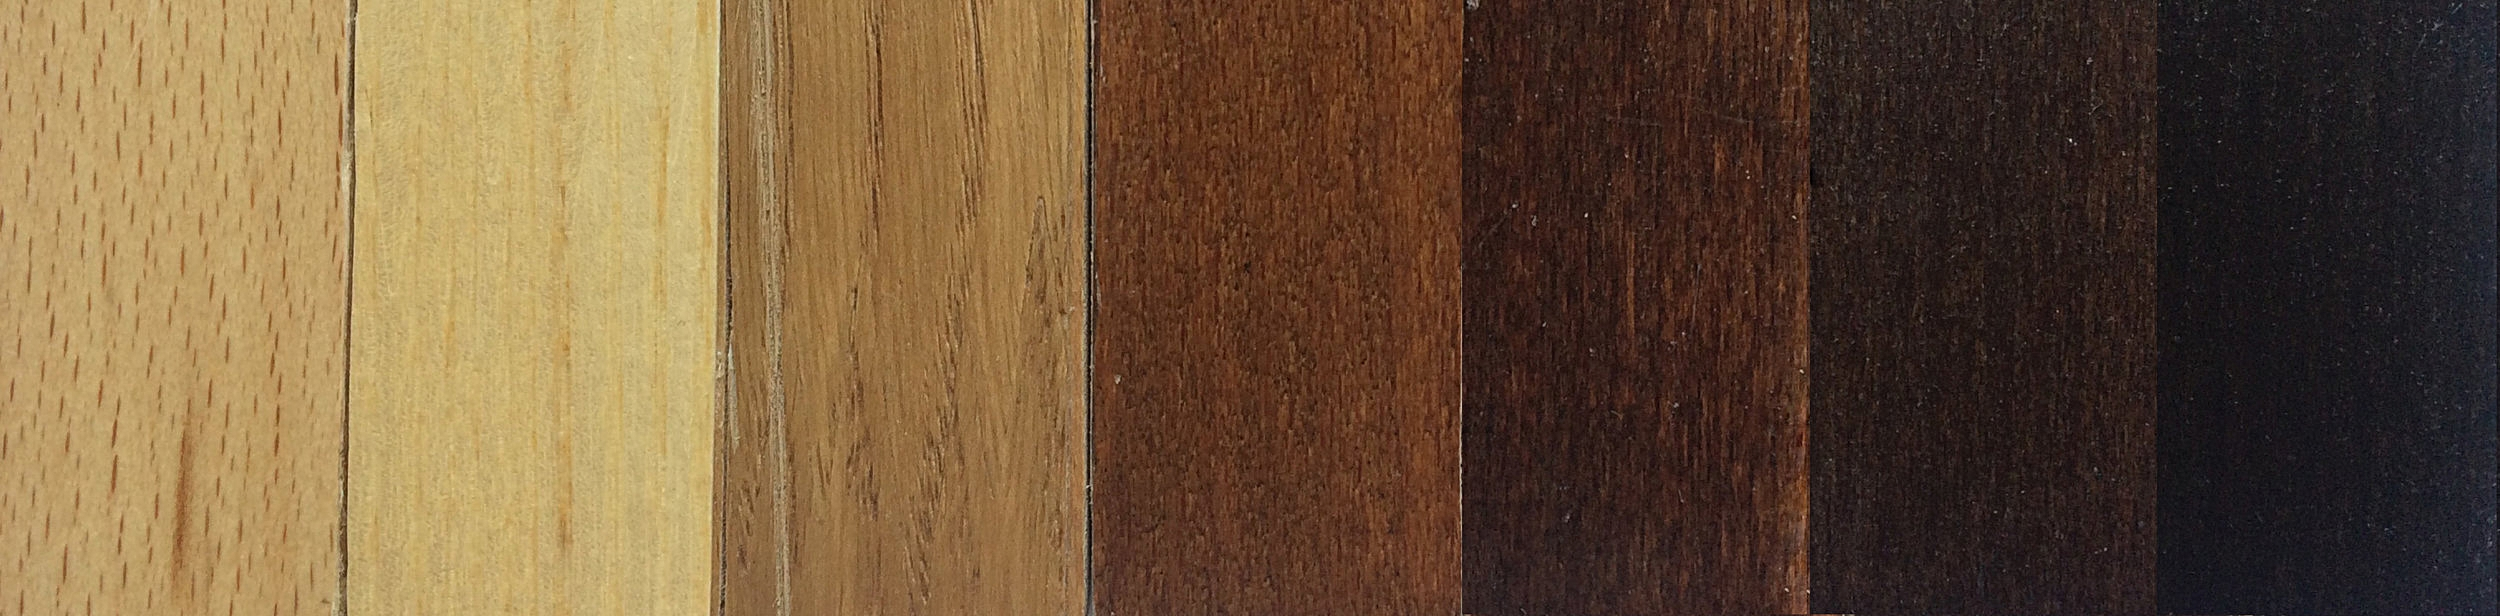 Left to Right  Natural Beech, Ash, Oak. Applied to Beech: Light Walnut, Medium Walnut, Dark Walnut, Wenge.